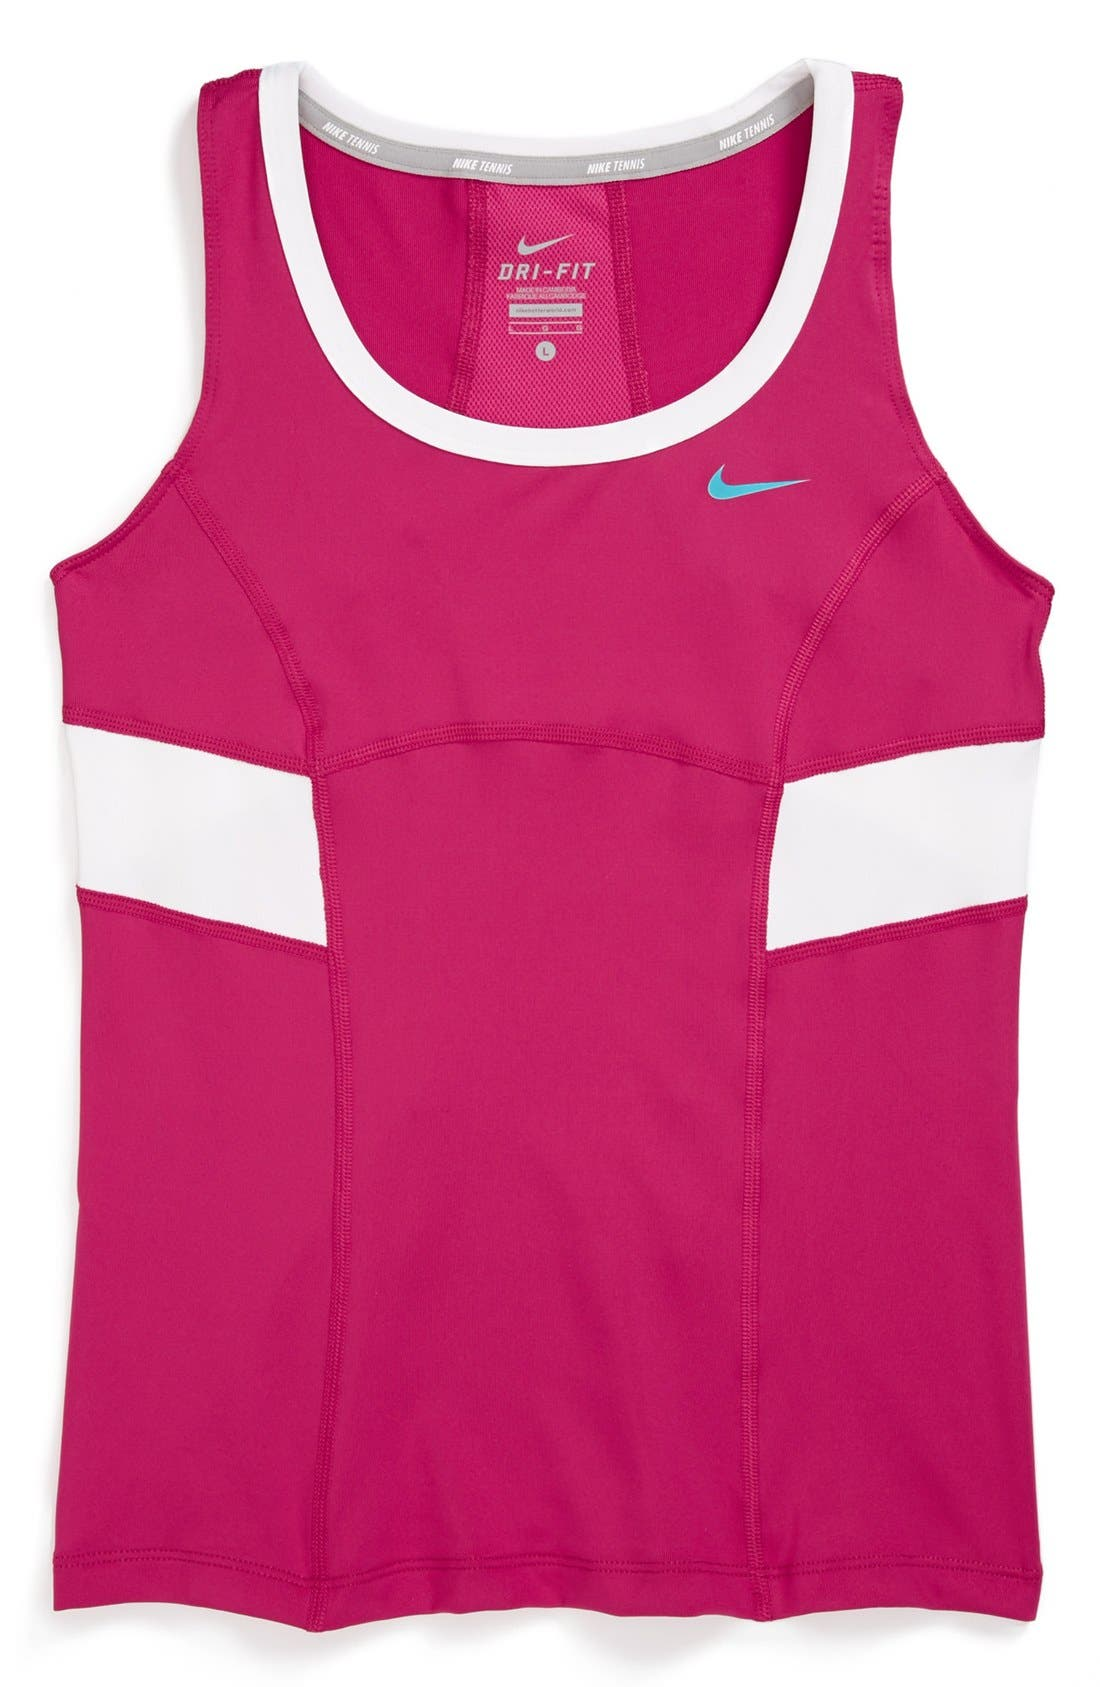 Alternate Image 1 Selected - Nike 'Power' Tennis Tank Top (Big Girls)